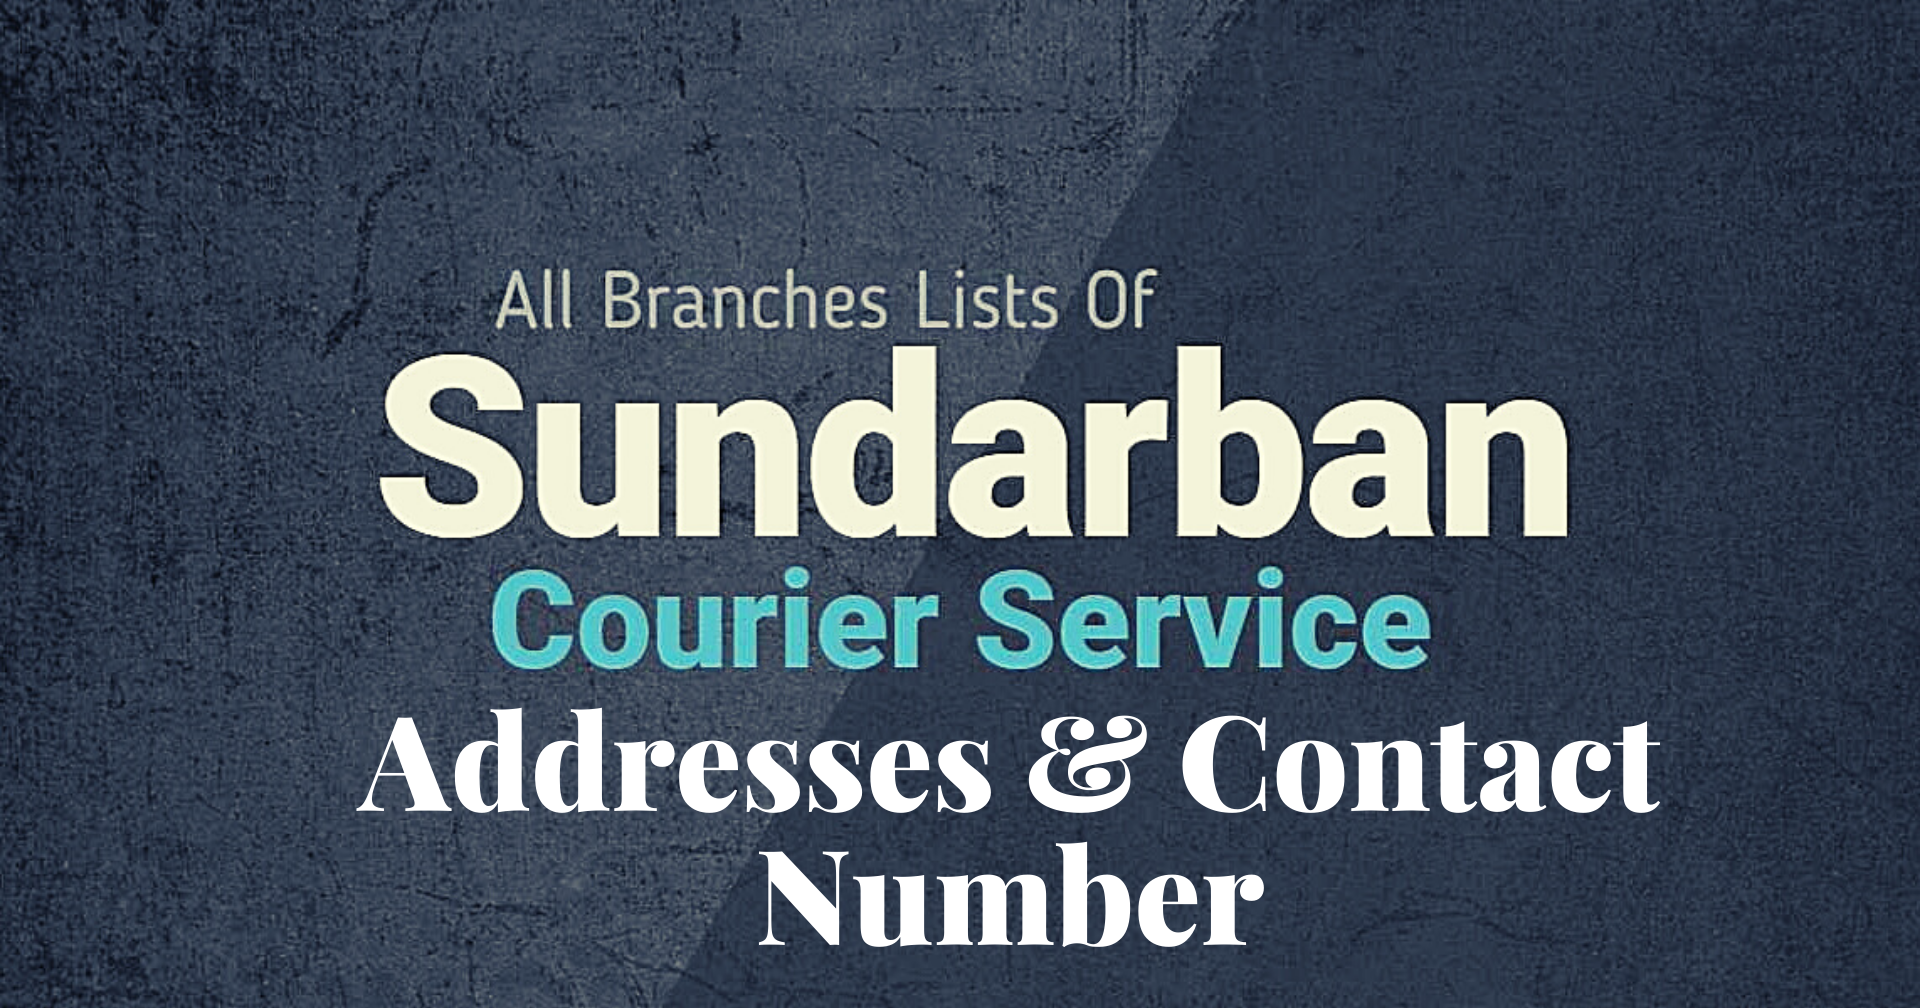 Sundarban Courier Service All office Addresses & Contact Number